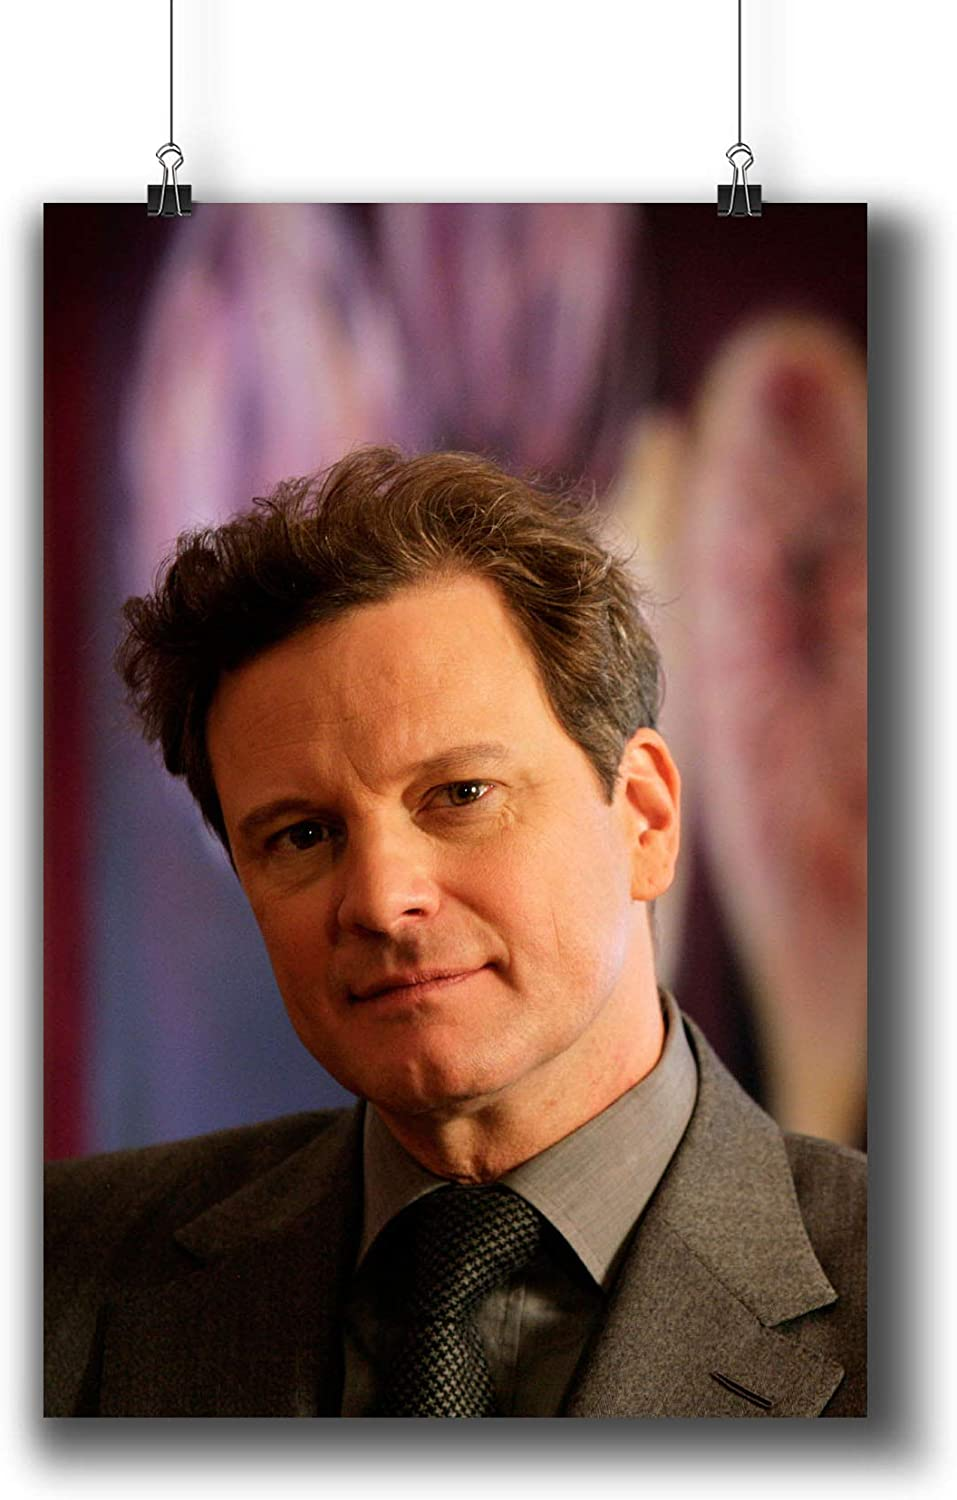 Colin Firth Actor Movie Photo Poster Prints 006-001,Wall Art Decor for Dorm Bedroom Living Room (A4|8x12inch|21x29cm)